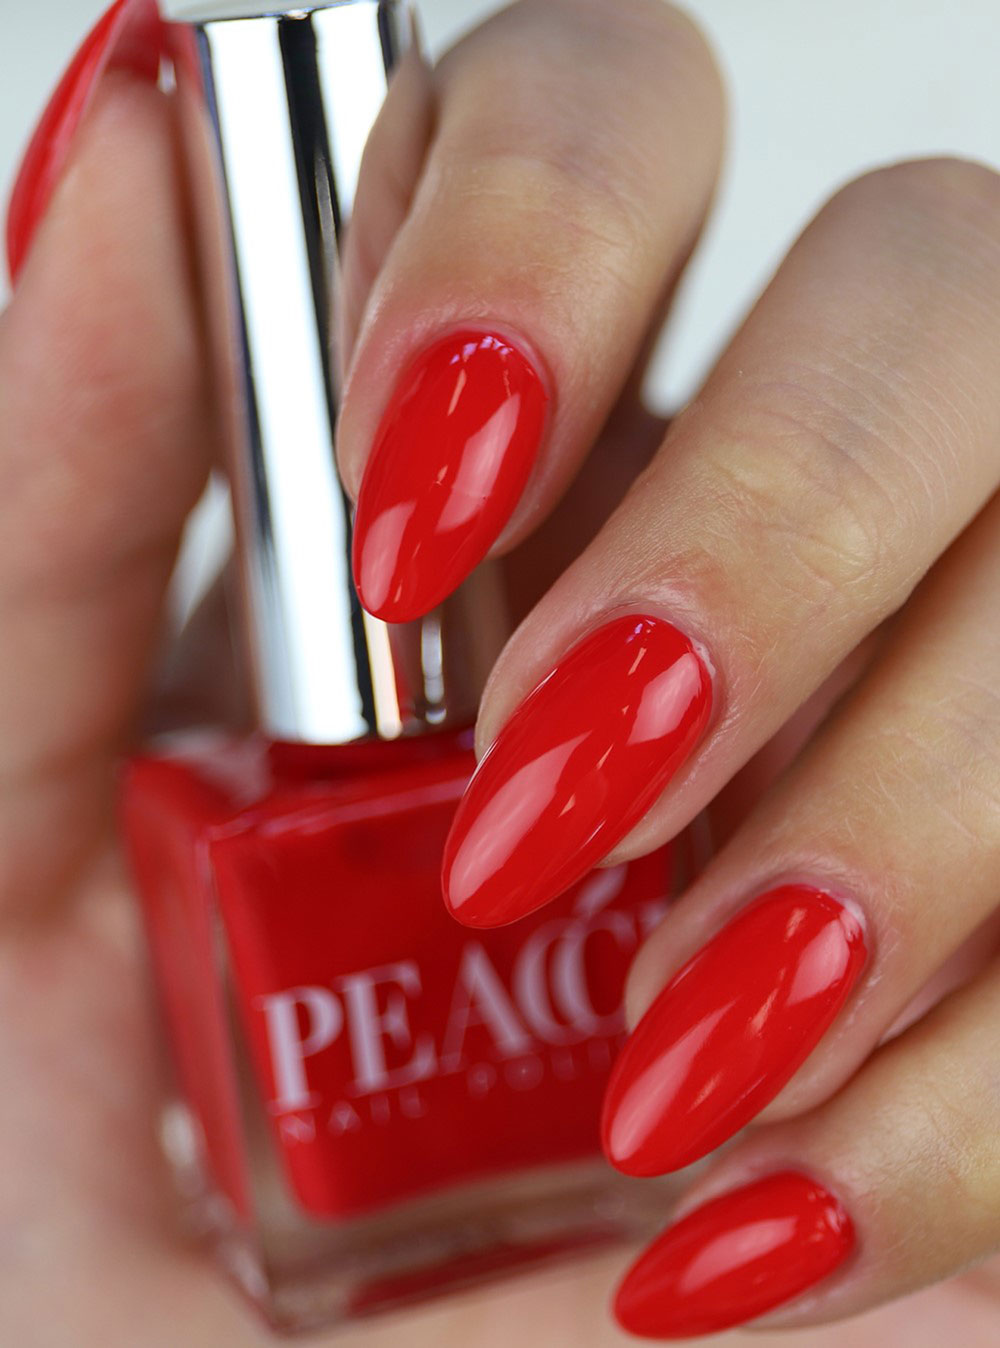 Peacci Candy Nail Polish